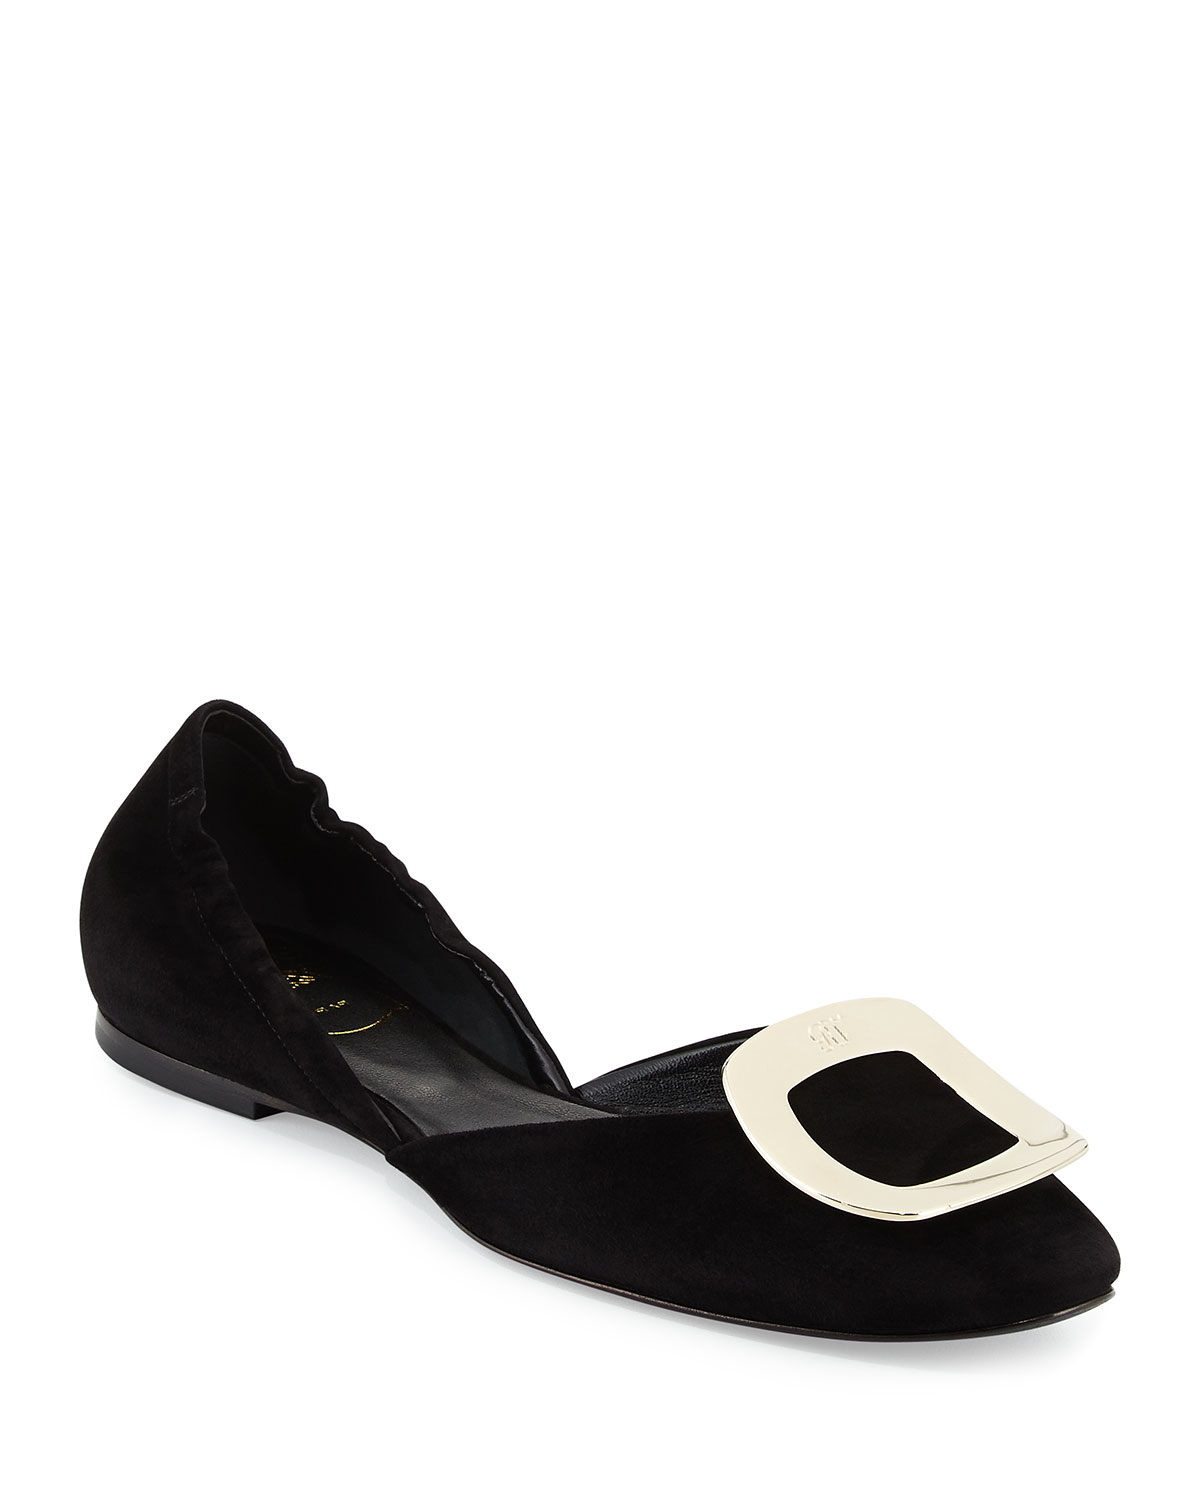 Roger Vivier Ballerine Chips Suede d Orsay Flat  57fa54a2e5bf8